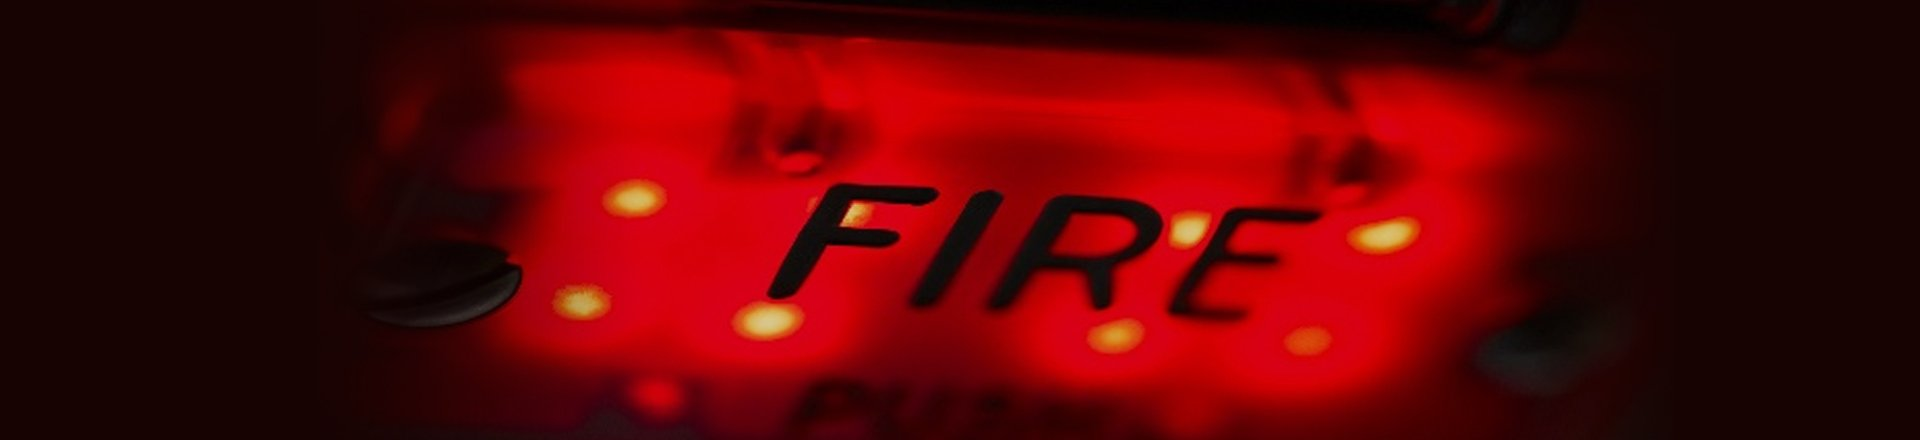 commercial-fire-alarm-systems-dark-gradient